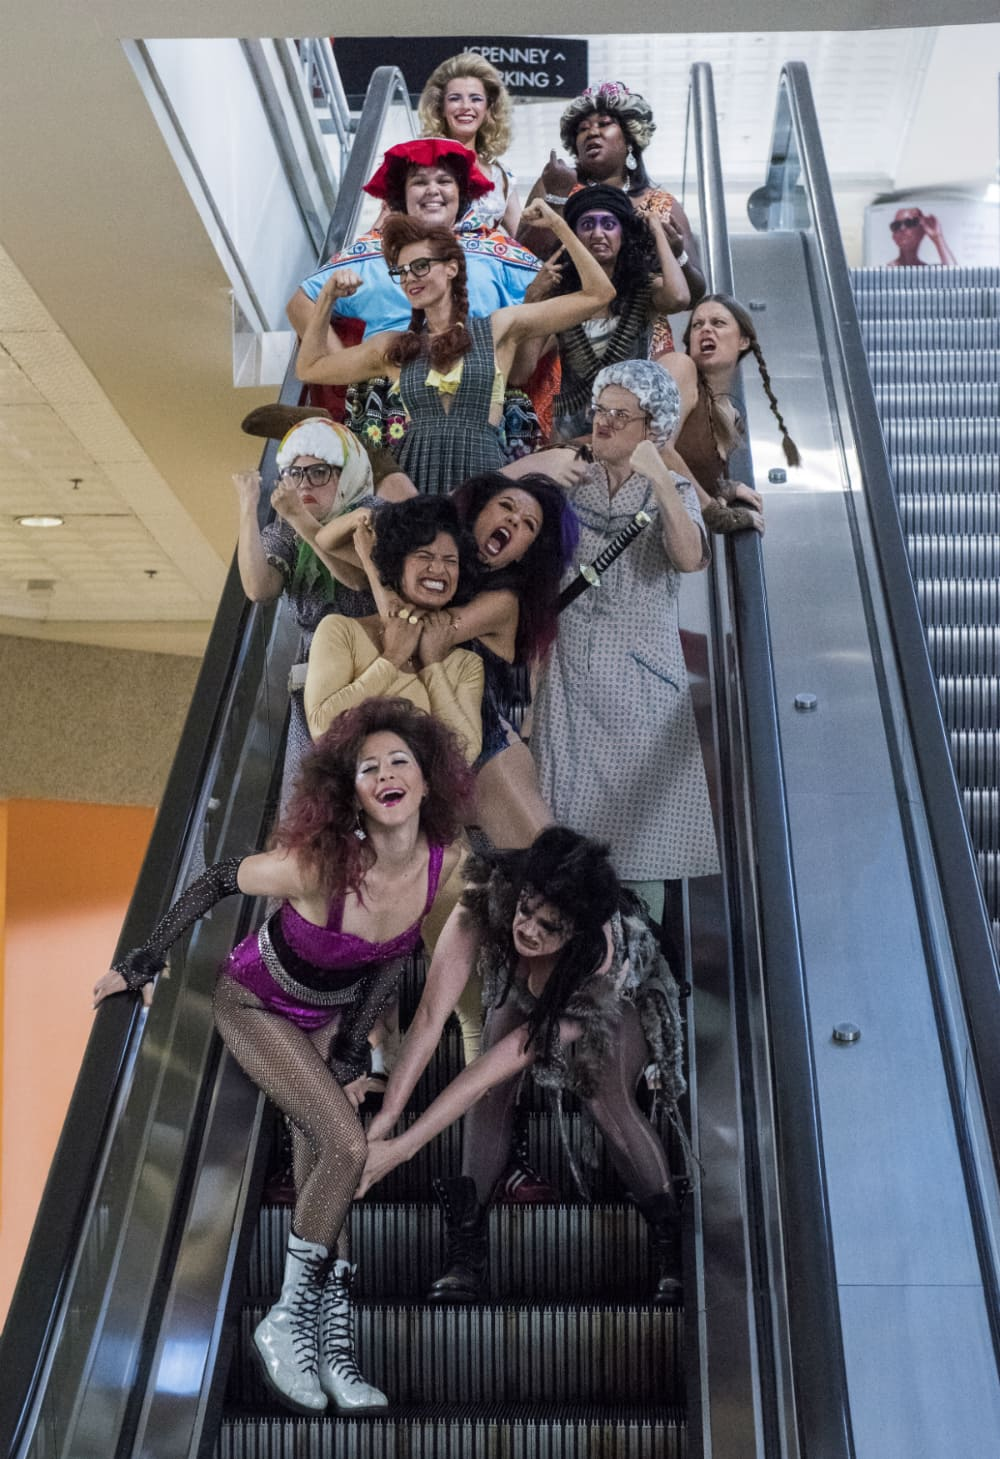 Jackie Tohn, Gayle Rankin, Ellen Wong, Shakira Barrera, Kimmy Gatewood, Rebekka Johnson, Marianna Palka, Kate Nash, Britney Young, Sunita Mani, Betty Gilpin and Kia Stevens in a still from Season 2 of 'Glow' (Netflix)